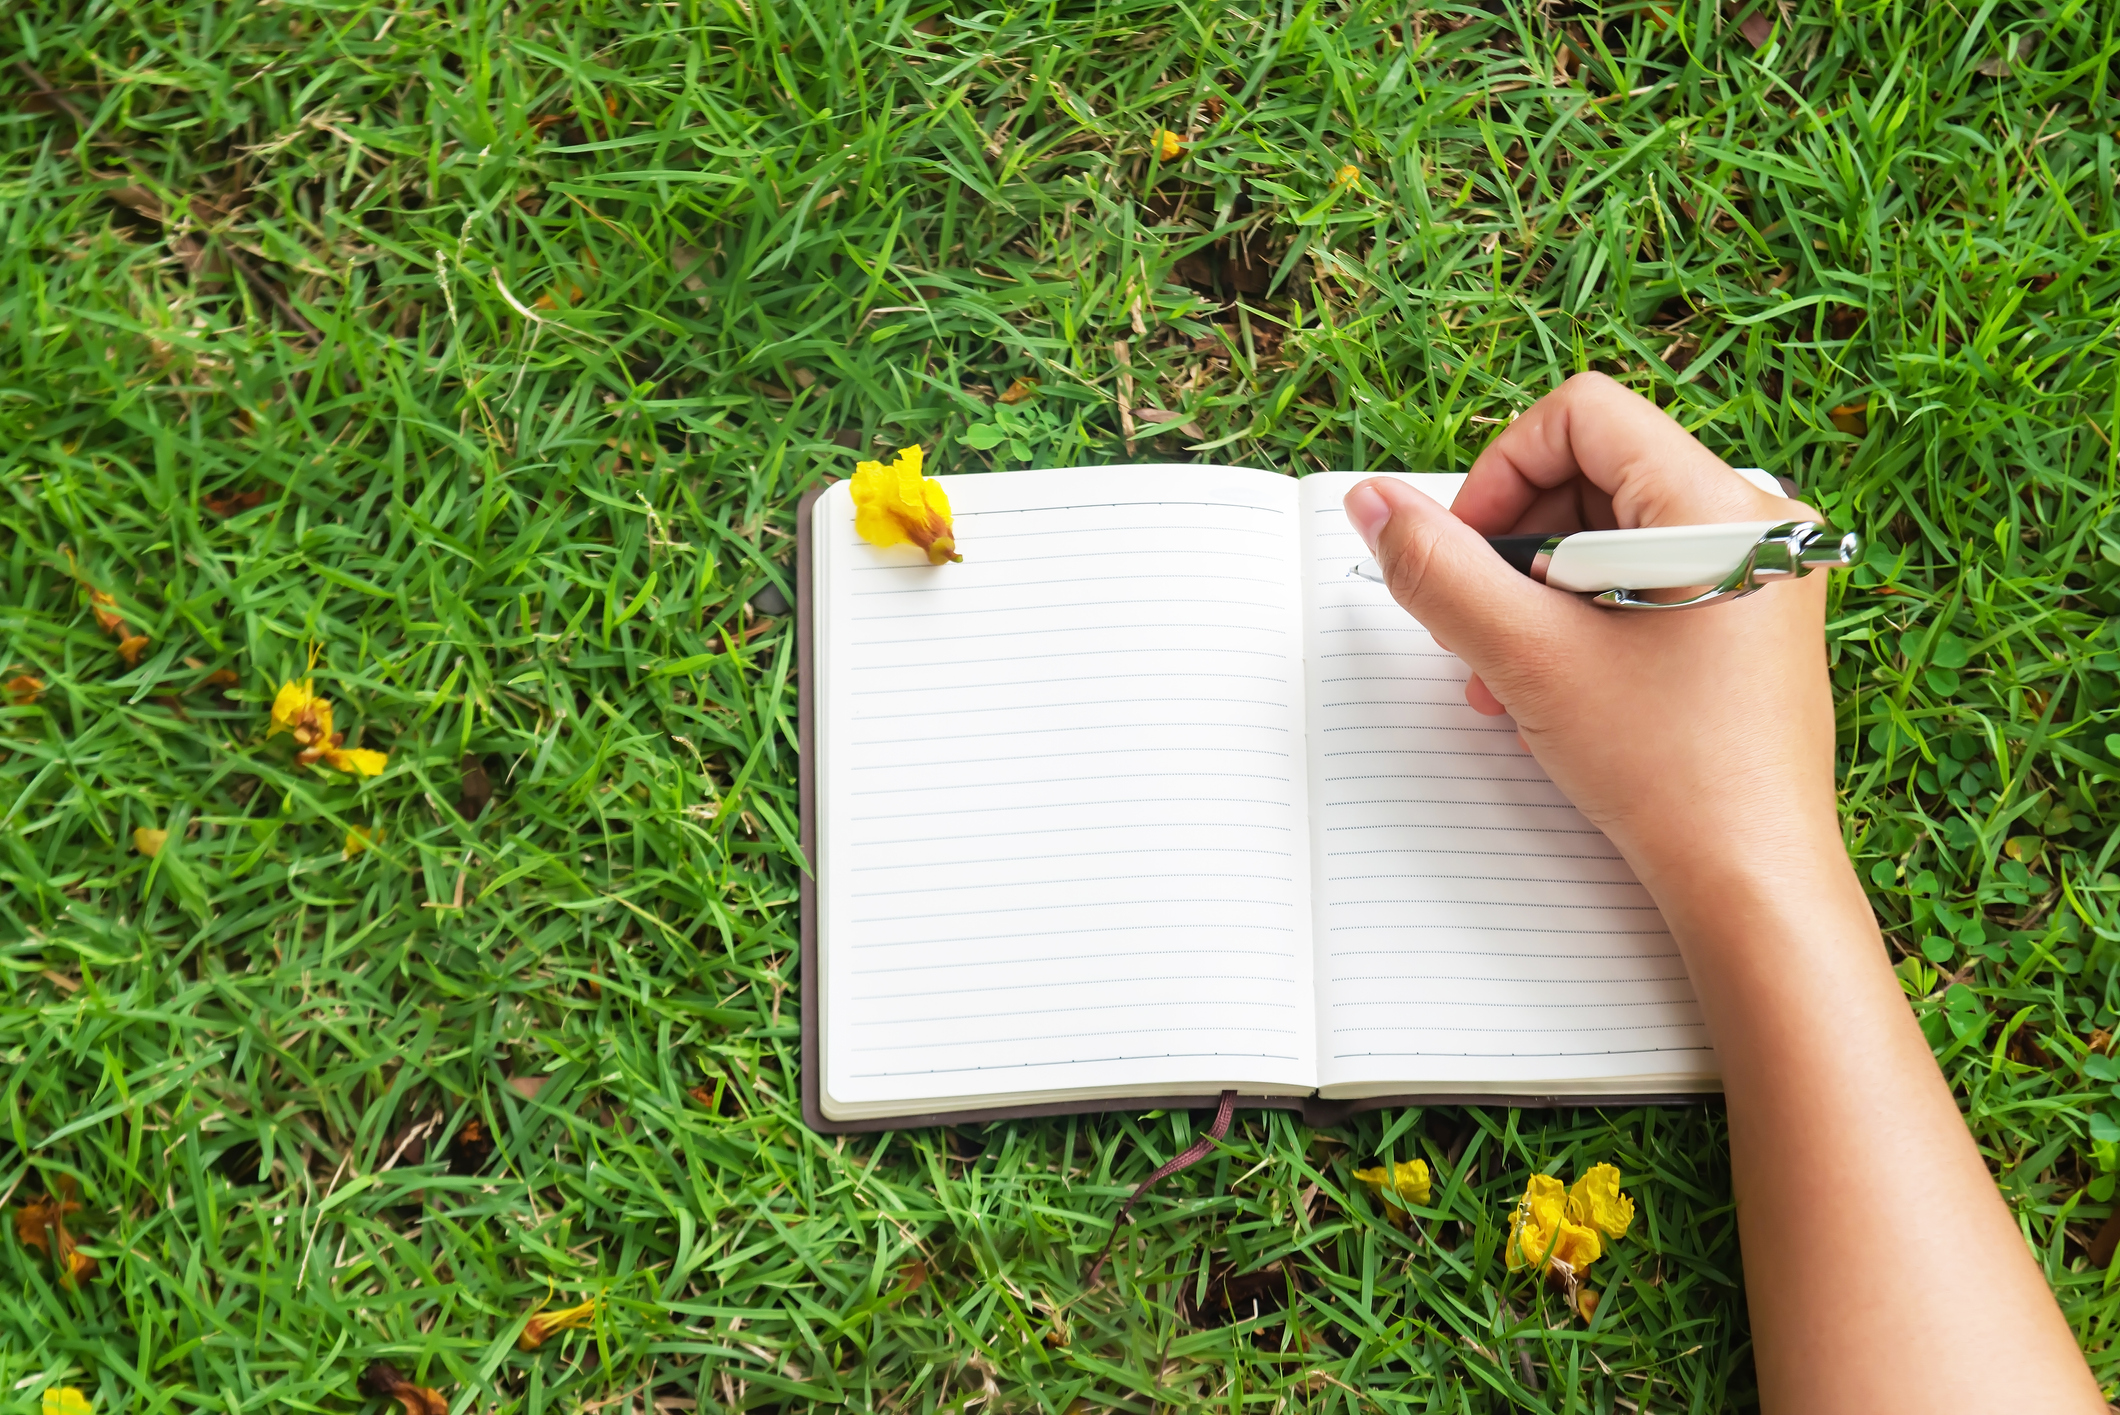 Photograph of right hand writing on white paper notebook while laying on grass.